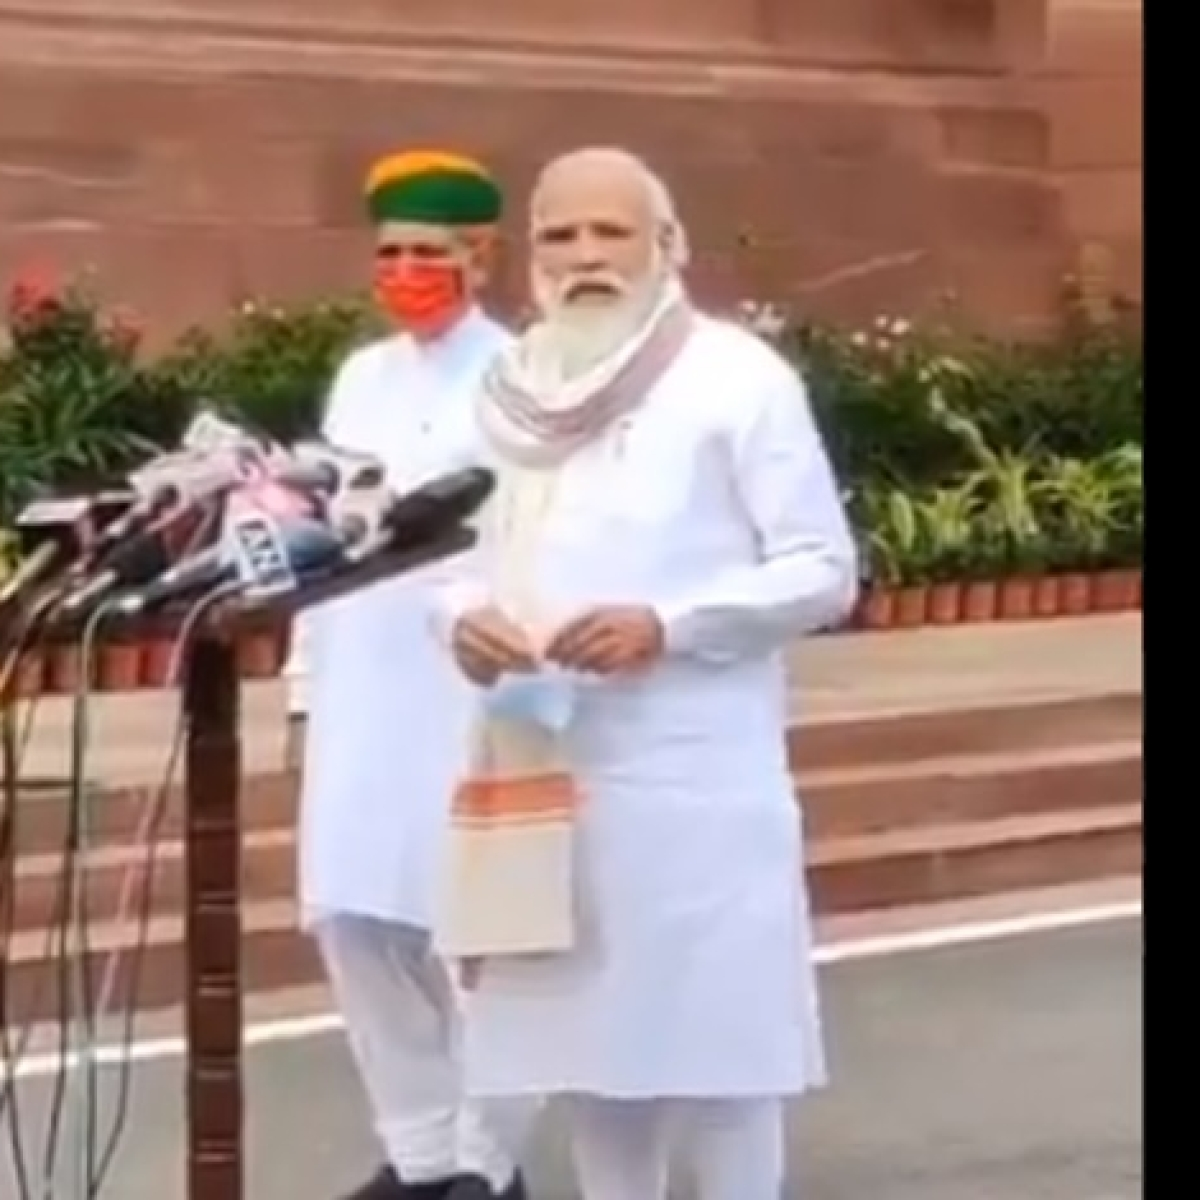 Watch: Modi asks media personnel if they are okay